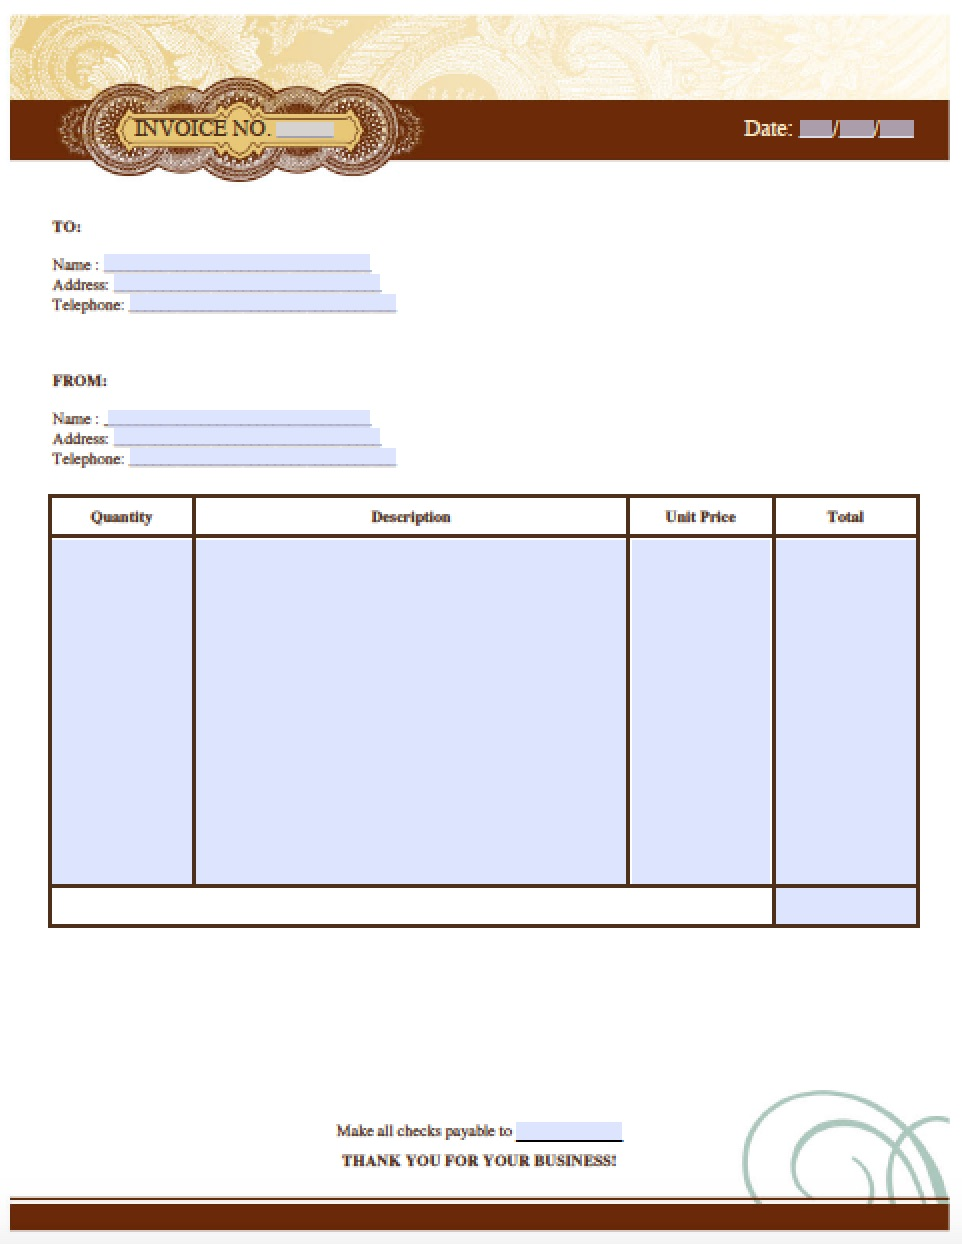 Free Artist Invoice Template Excel PDF Word Doc - How to create a business invoice for service business